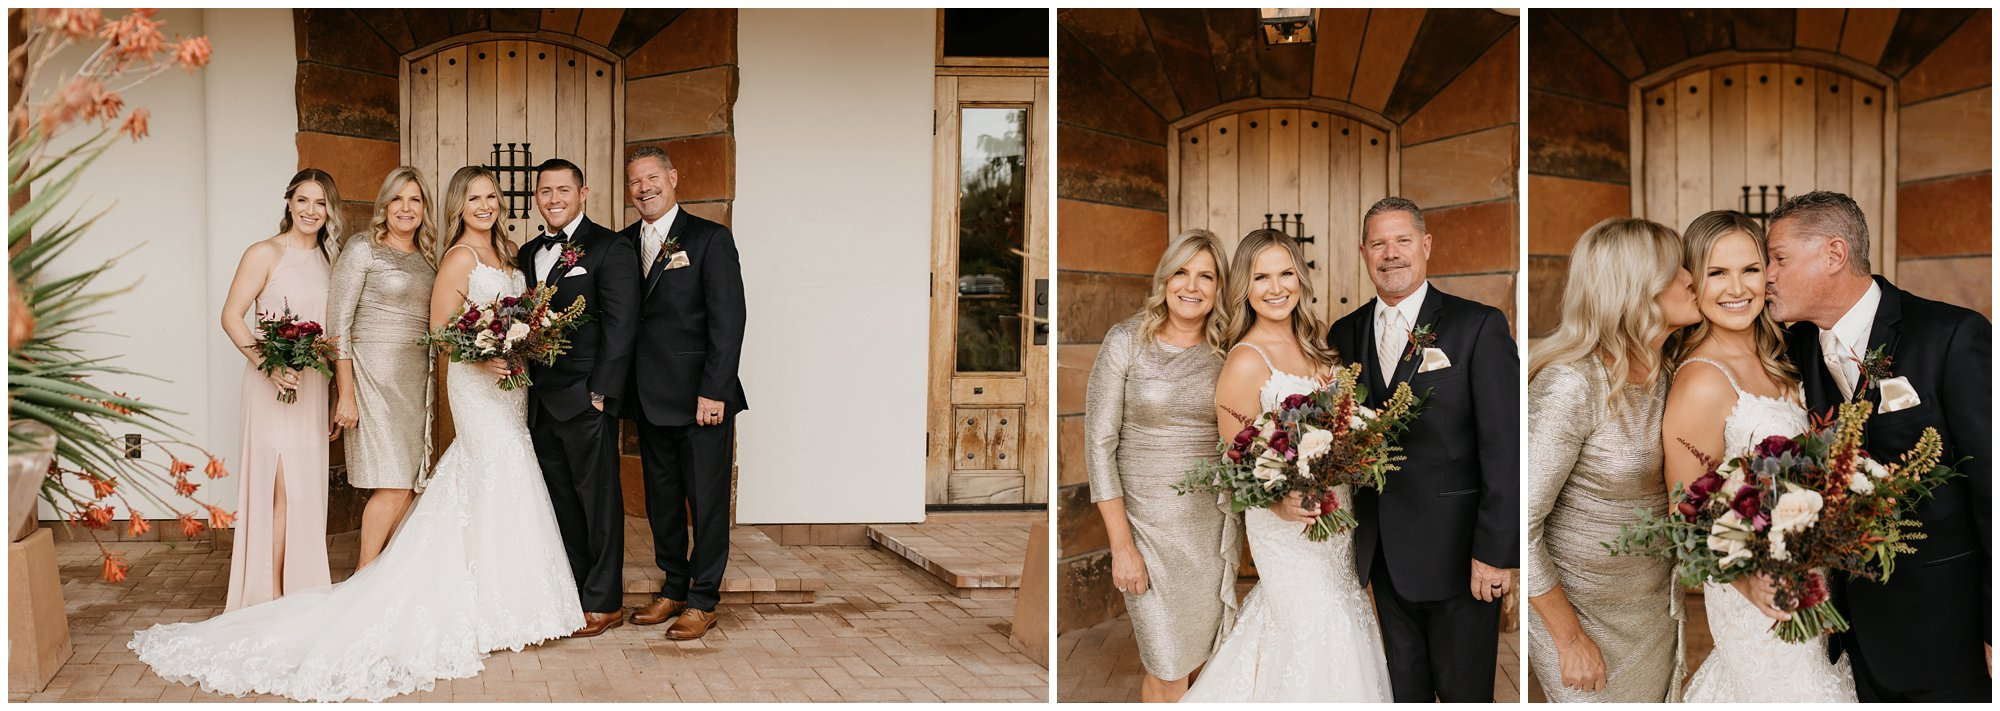 Arizona Wedding Photographer - Roberts Wedding_0034.jpg